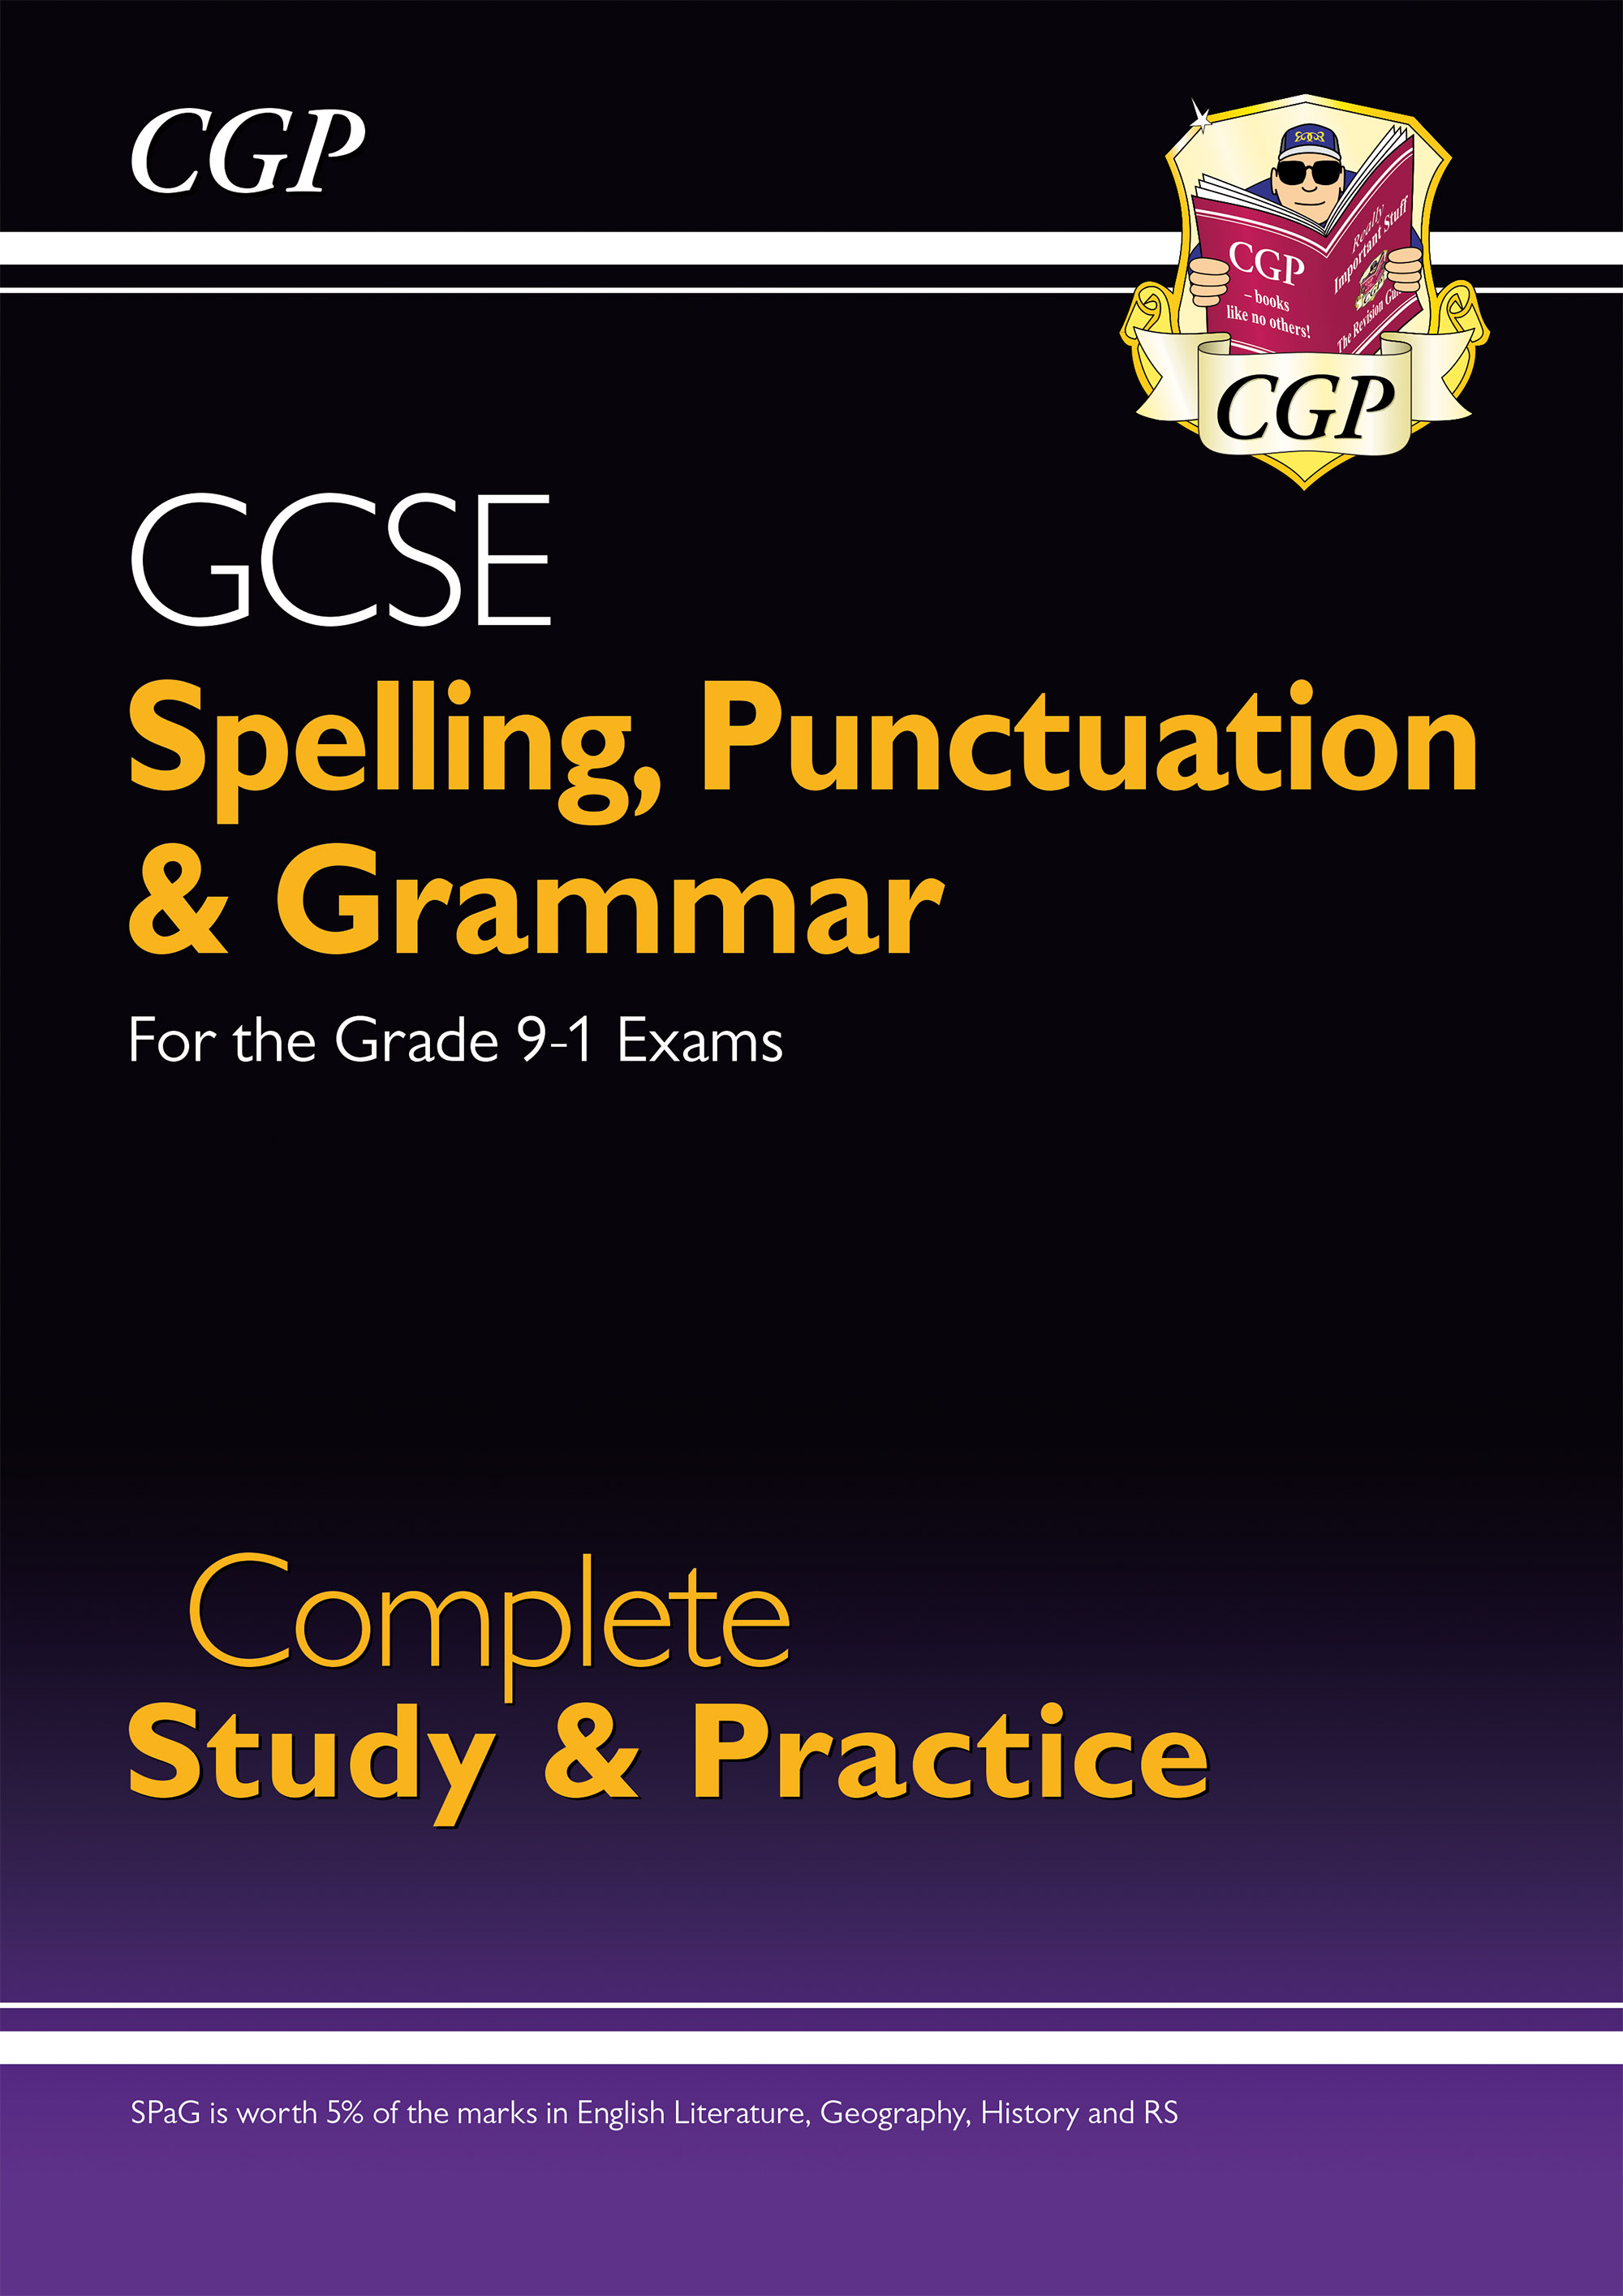 EGS43DK - Spelling, Punctuation and Grammar for Grade 9-1 GCSE Complete Study & Practice